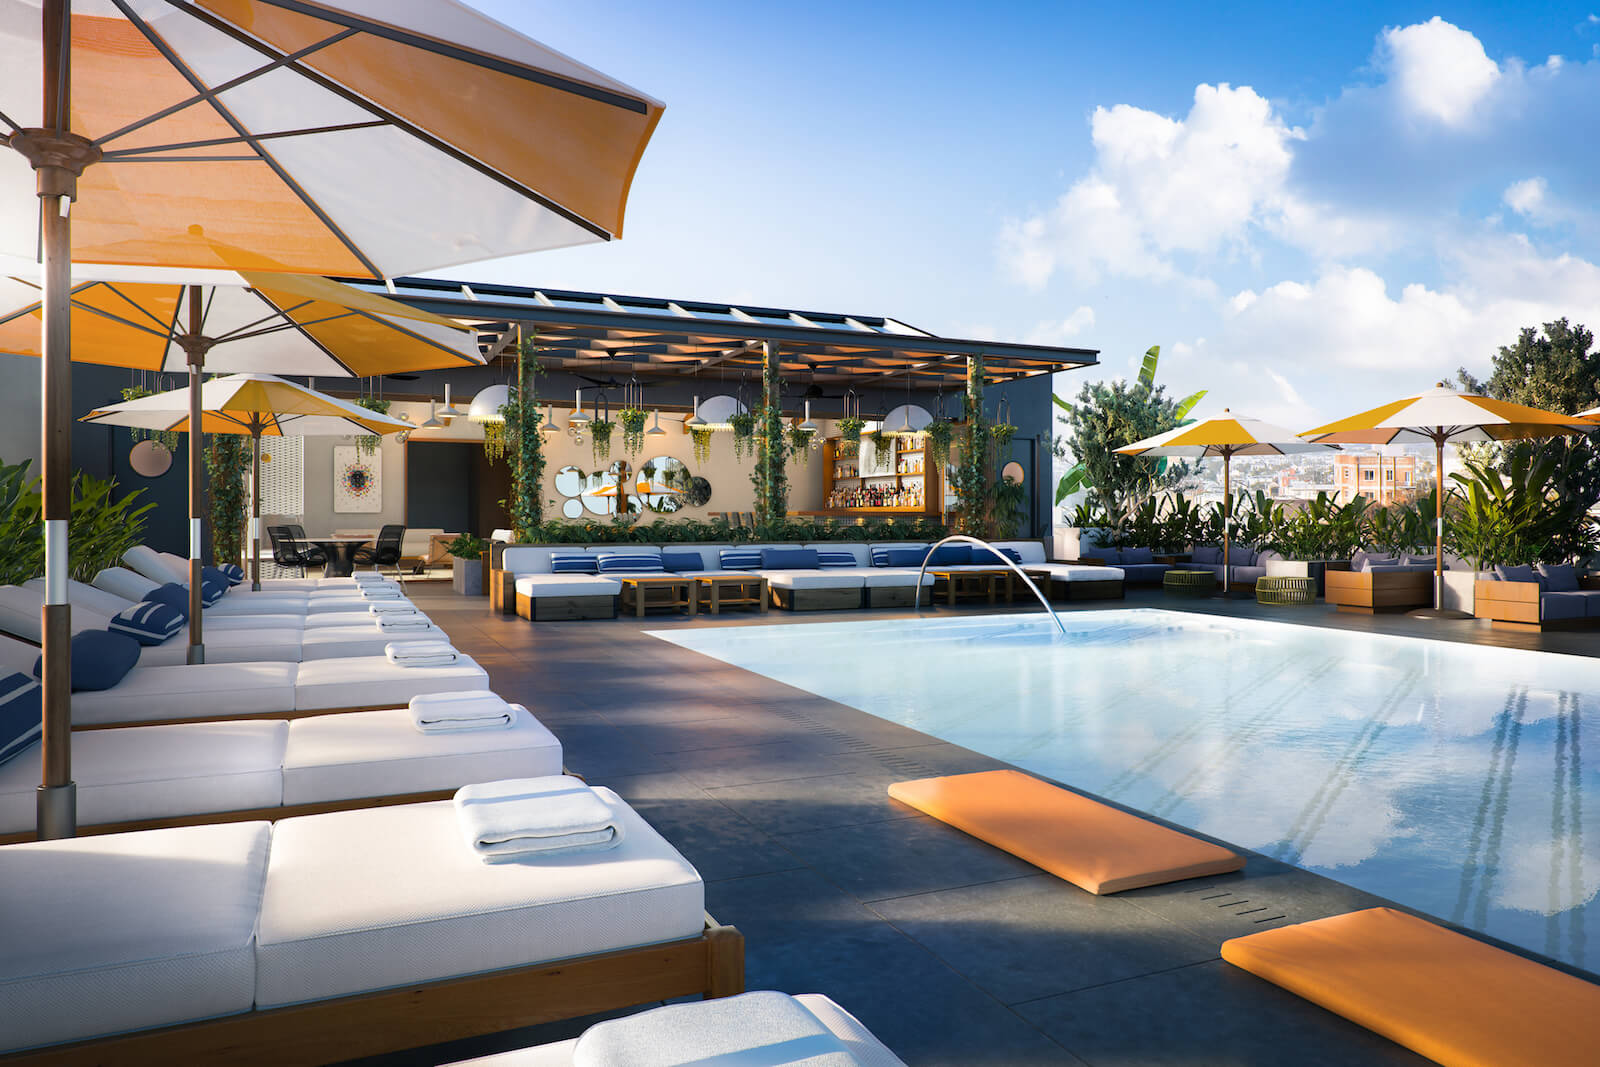 Hyatt adding close to 200 new locations to the Americas by 2022 - featured image